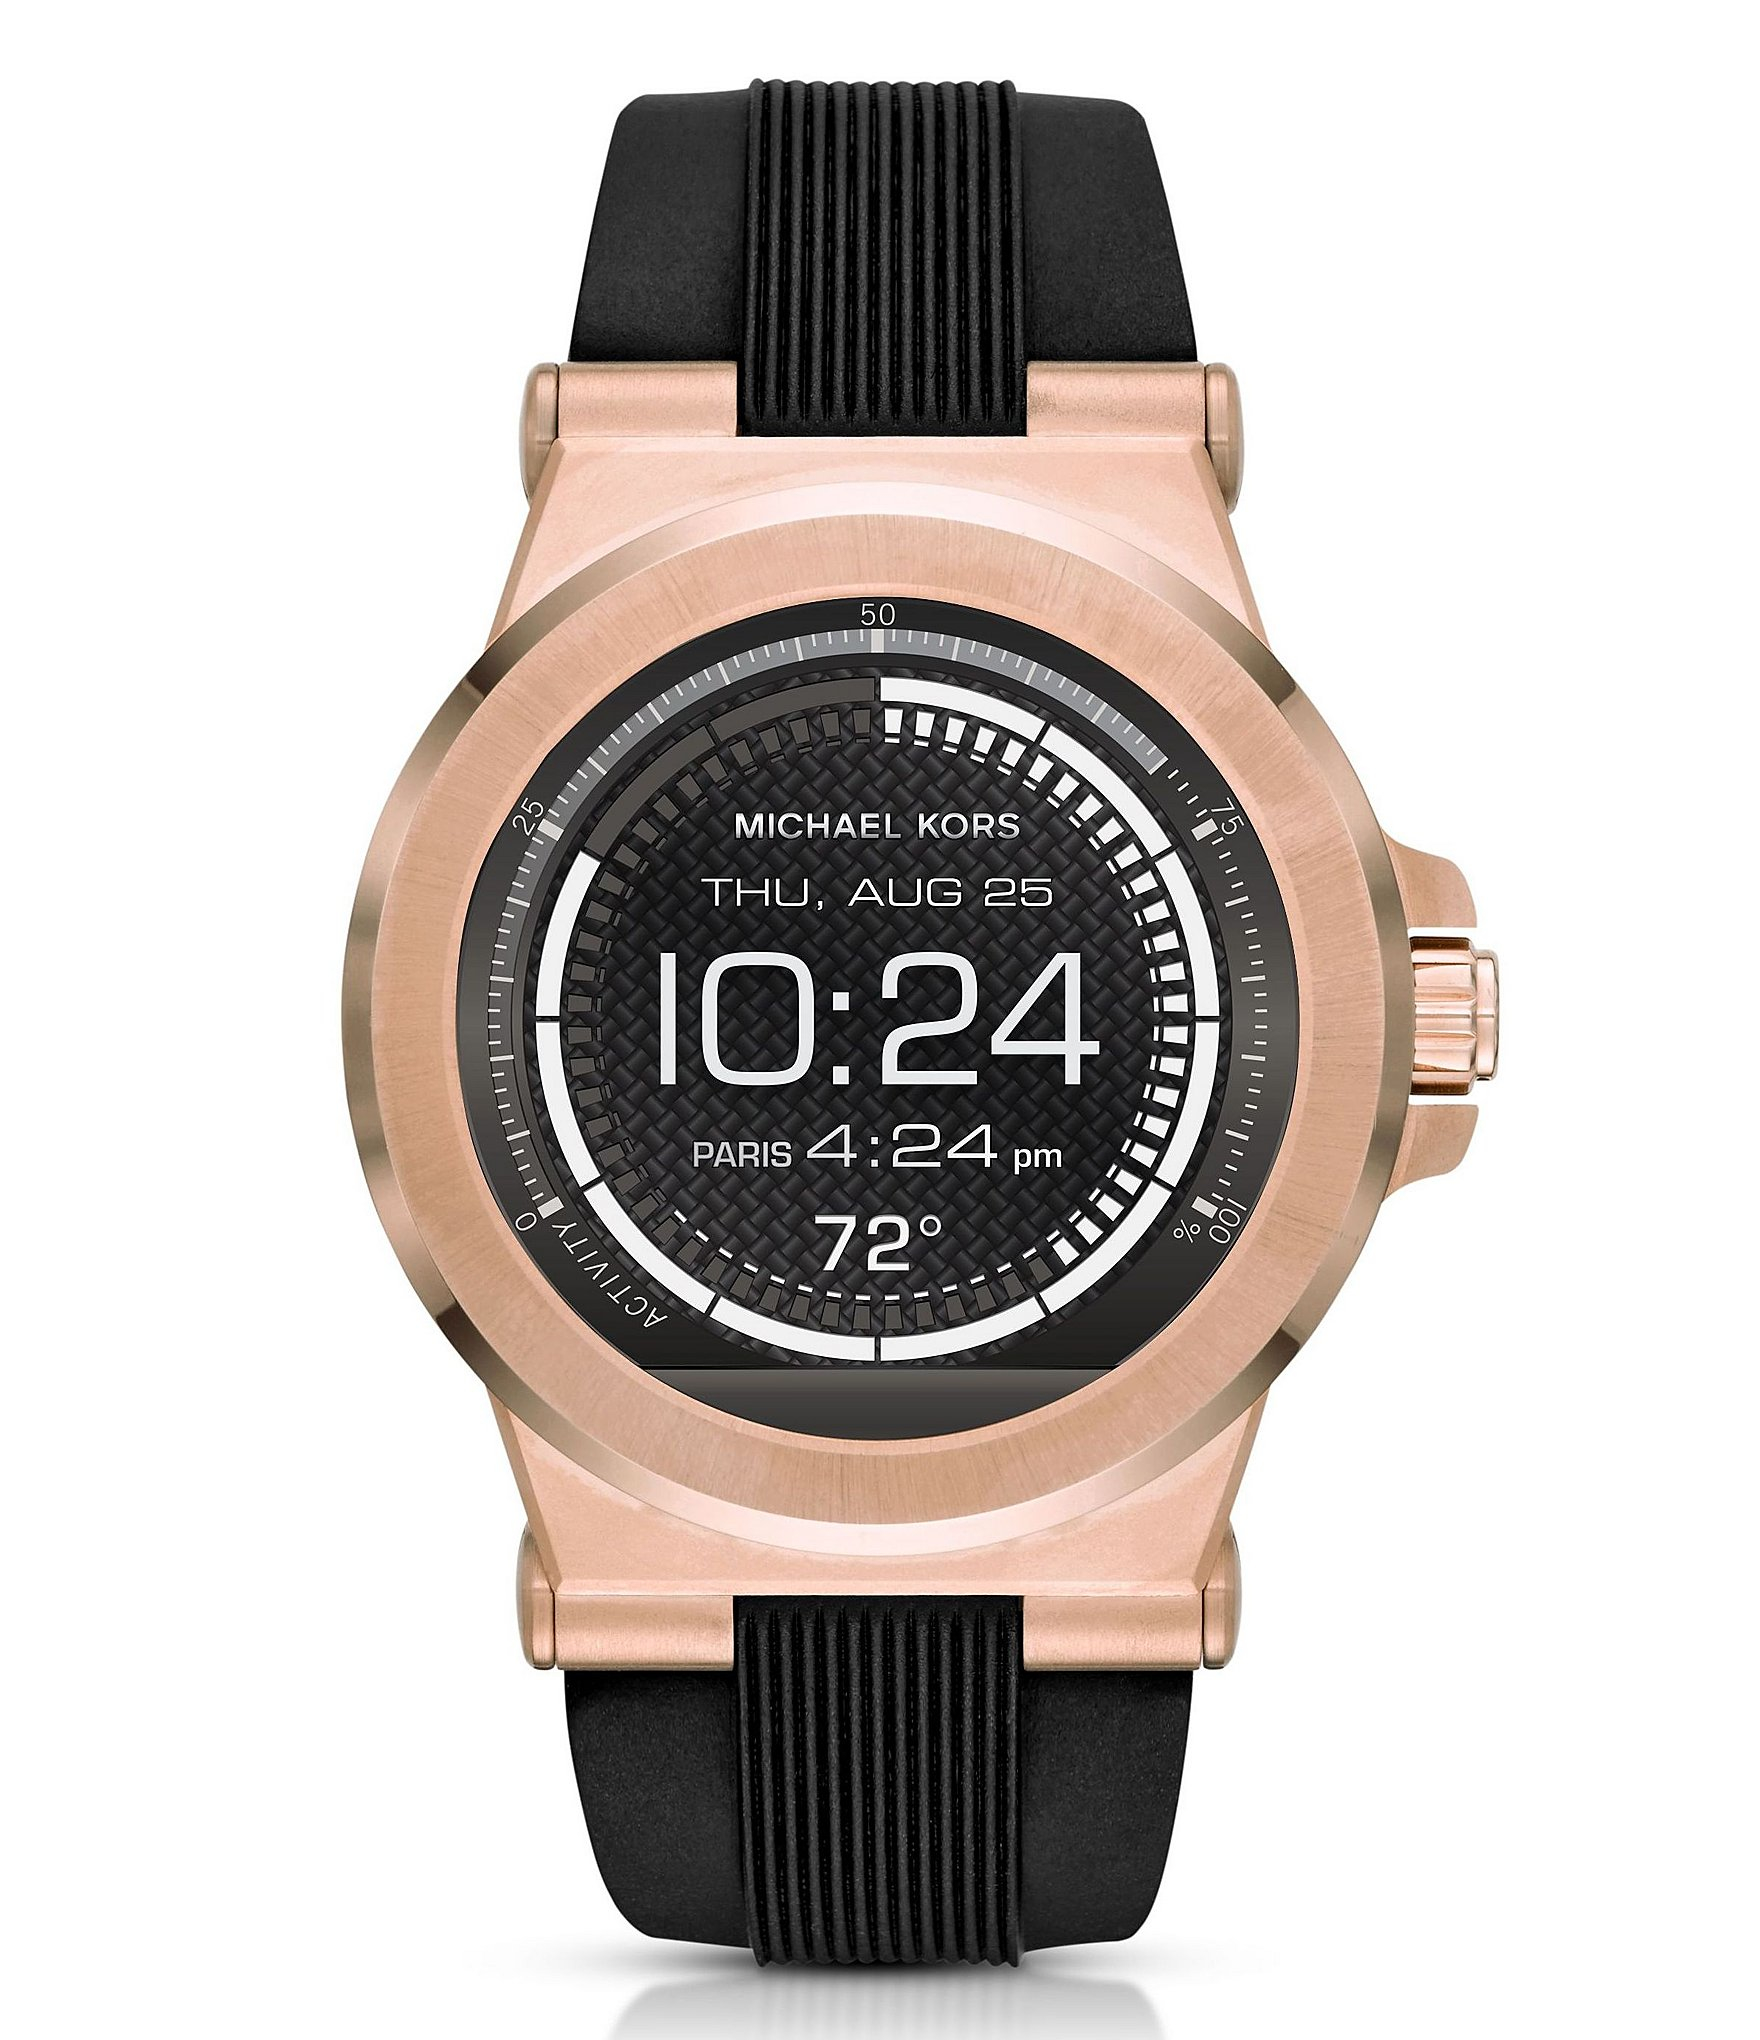 michael kors access dylan silicone strap smart watch in. Black Bedroom Furniture Sets. Home Design Ideas